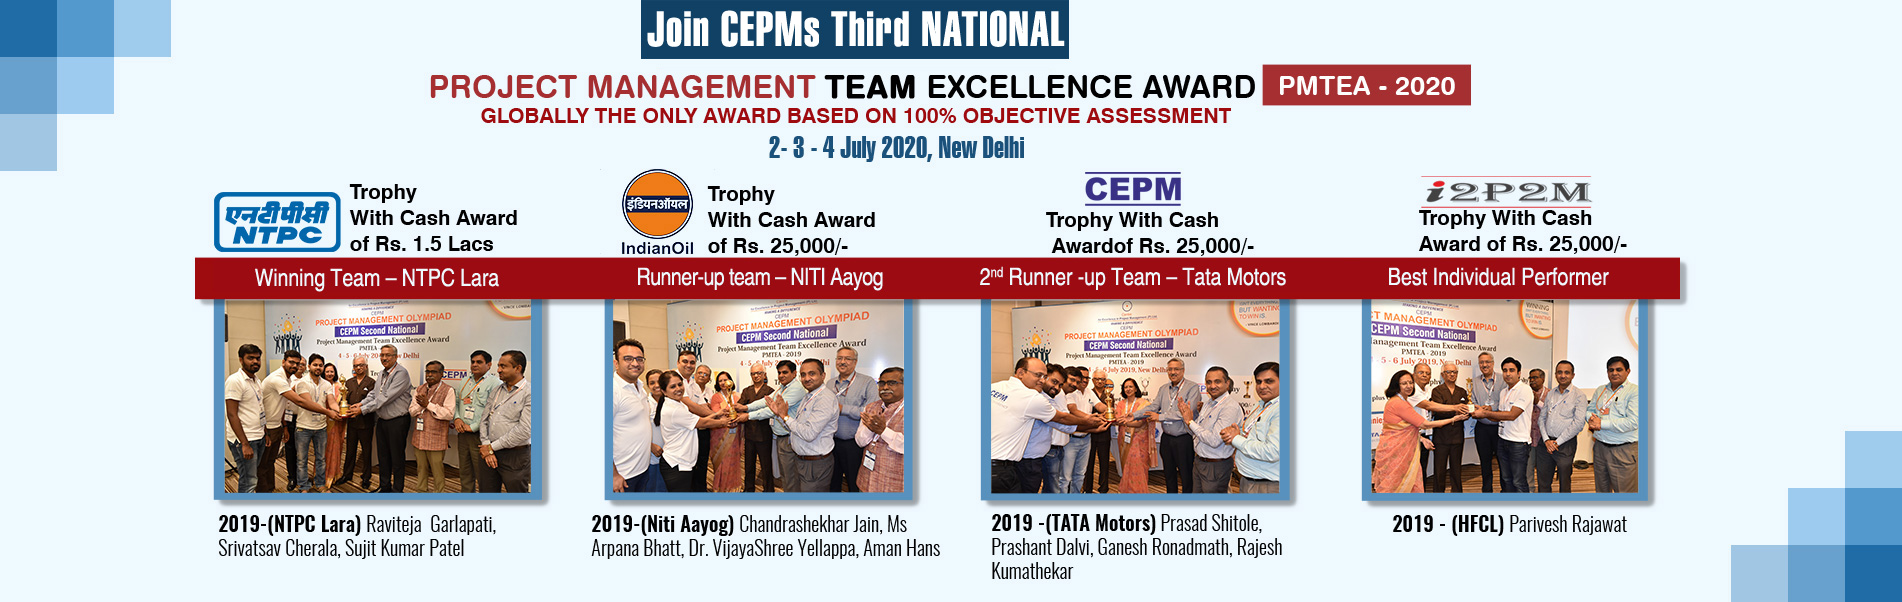 3rd National: Project Management Team Excellence Award PMTEA 2020